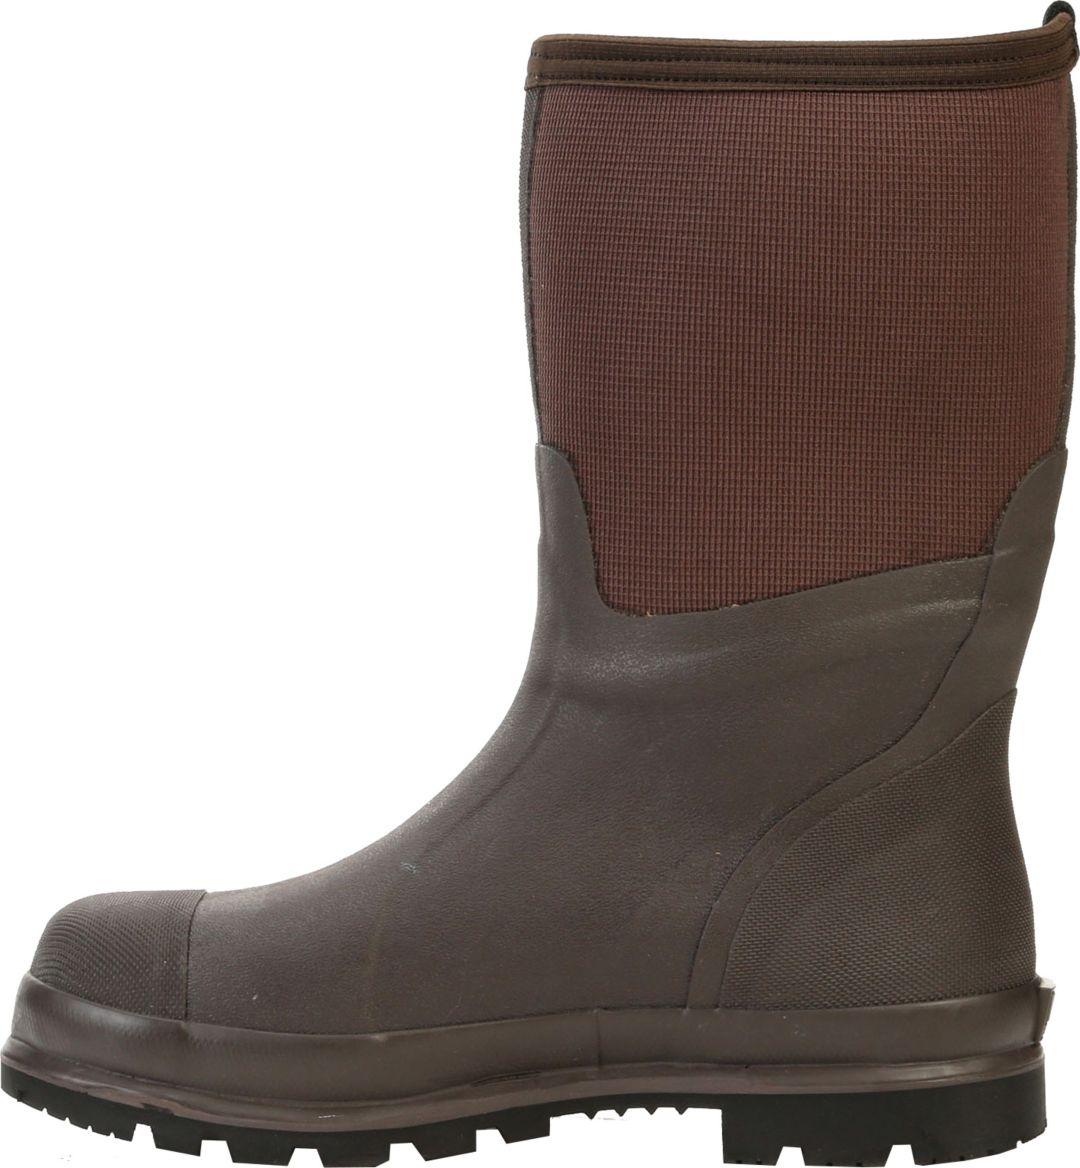 b28f972fbc7 Muck Boots Men's Chore Cool Mid Work Boots